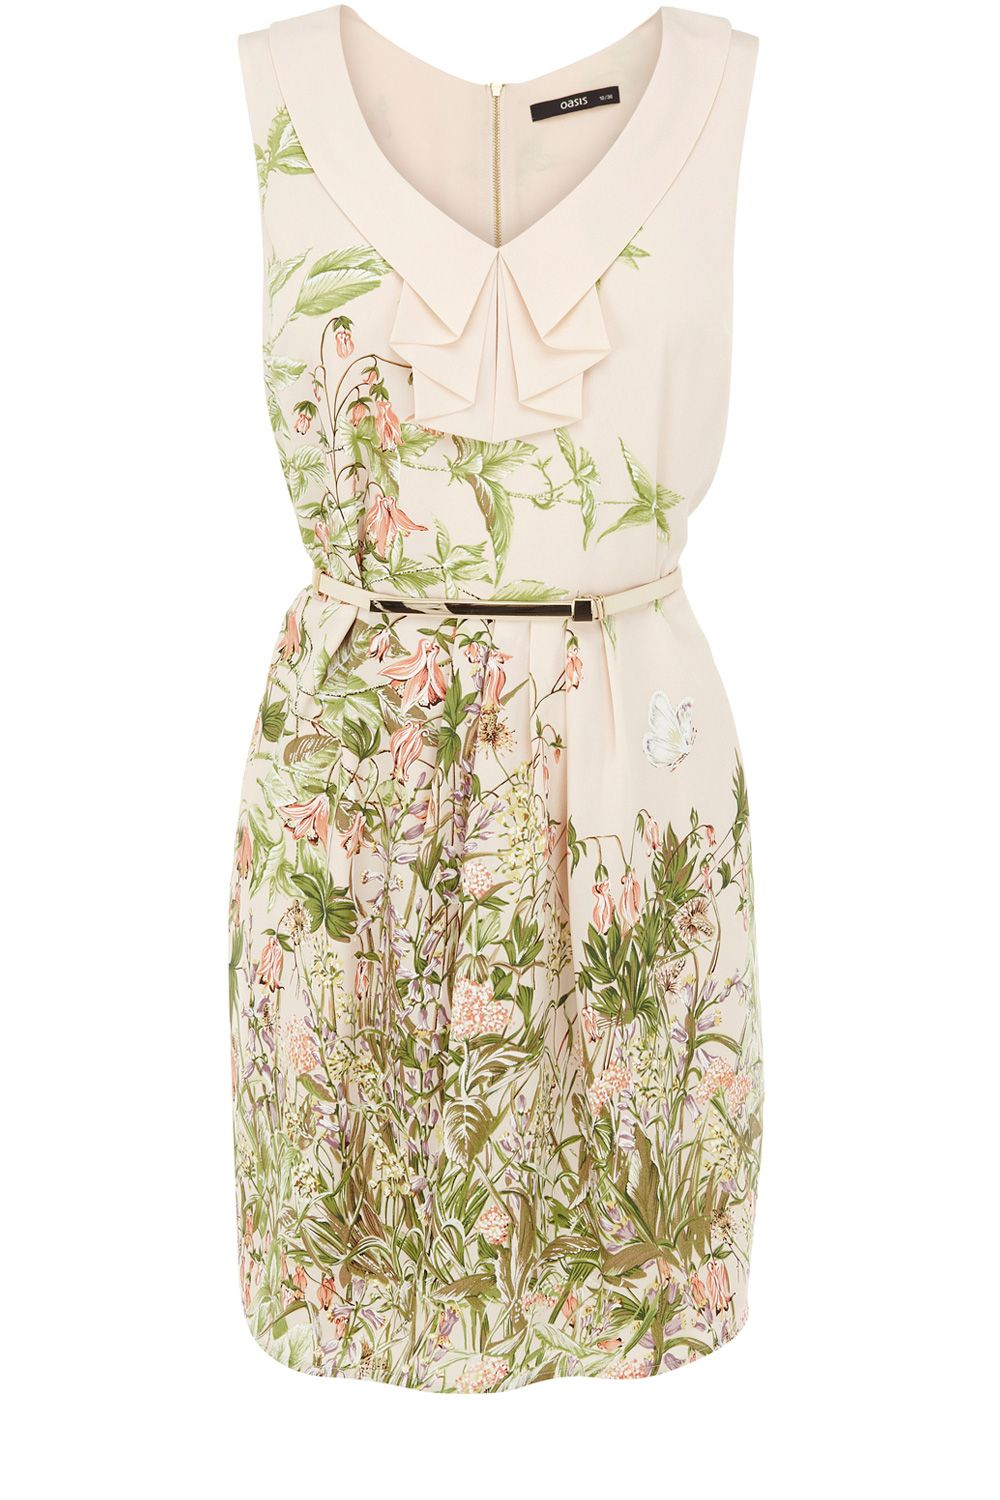 Botanical border dress